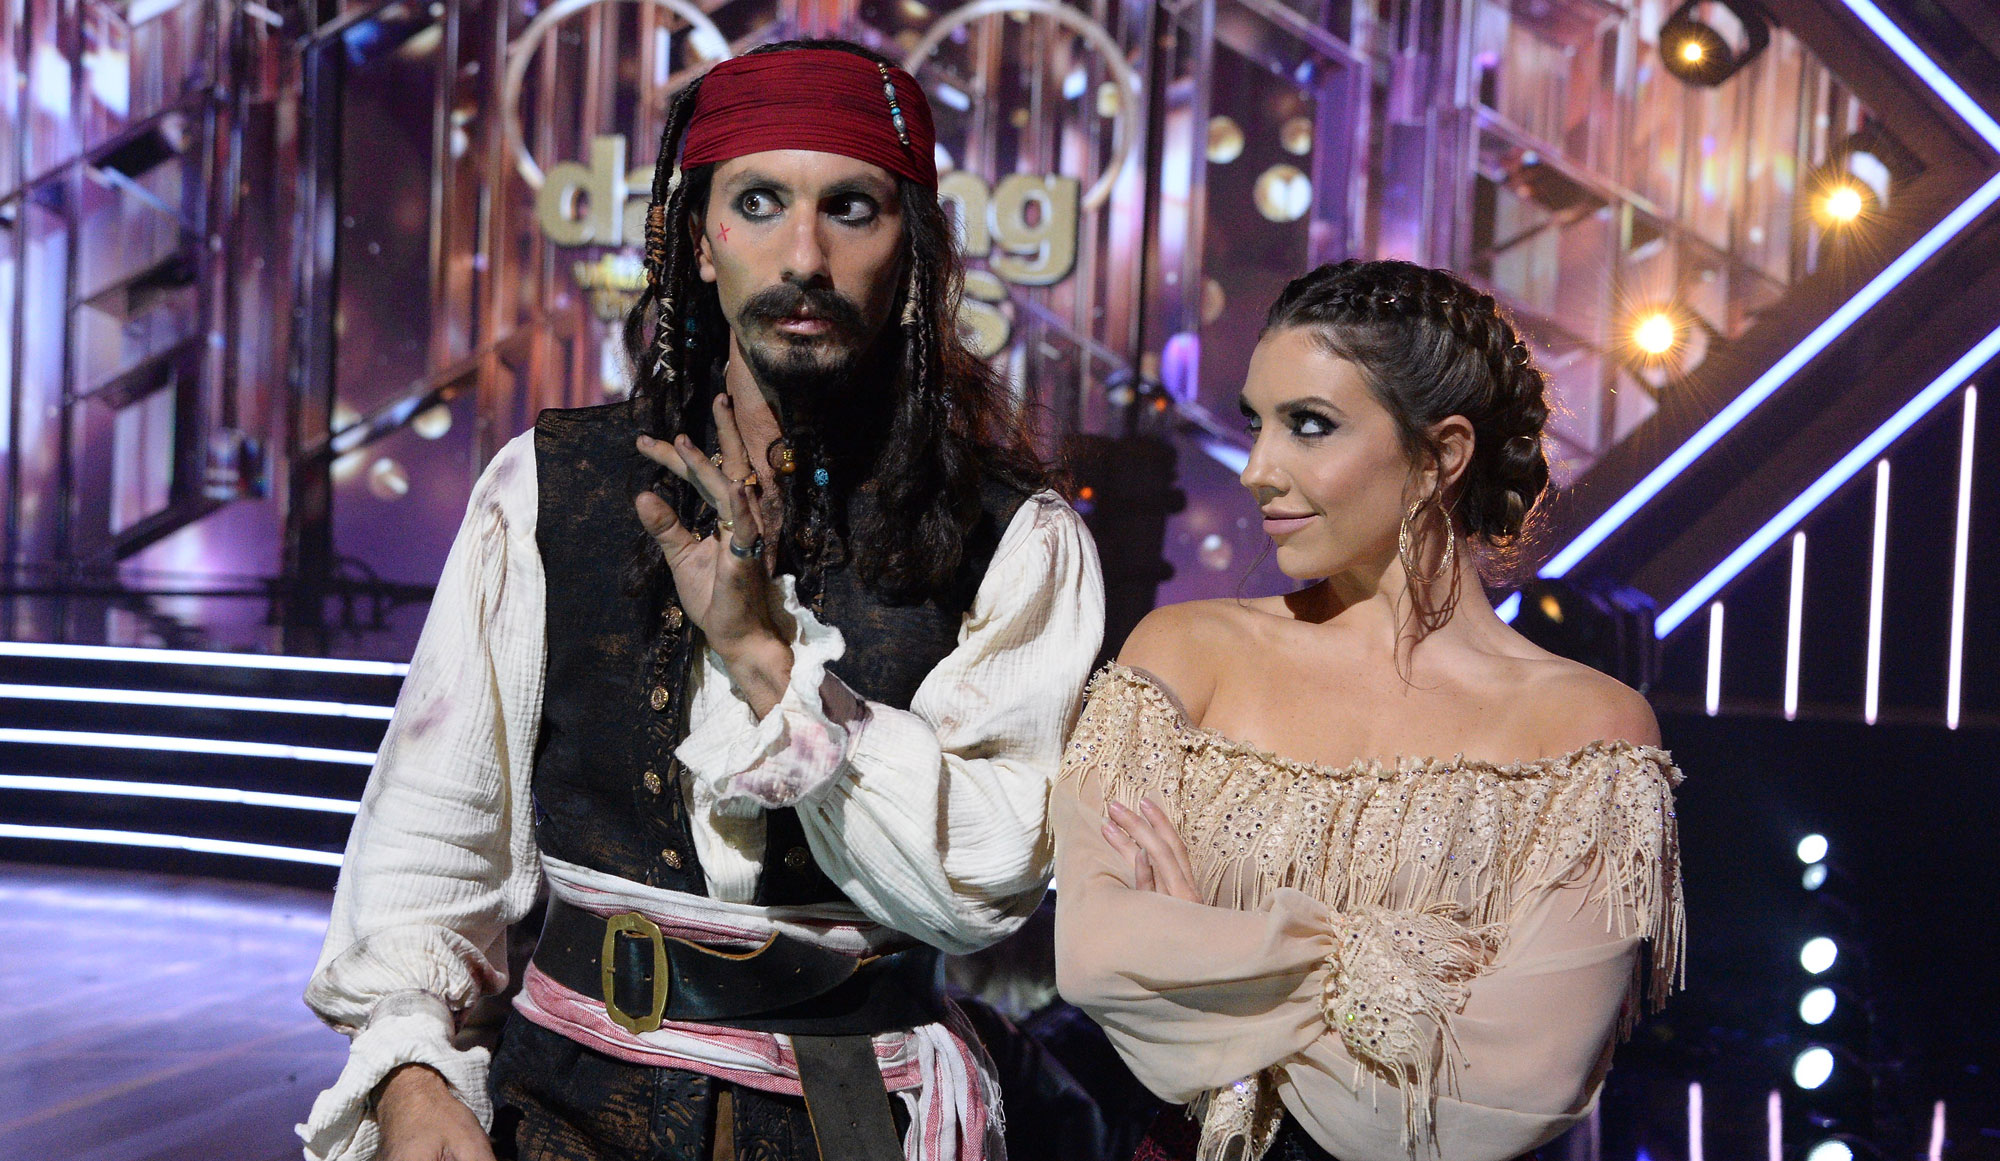 Nev Schulman is the latest to channel Jack Sparrow on 'Dancing with the Stars': Was he as good as James Van Der Beek and Riker Lynch? [WATCH]